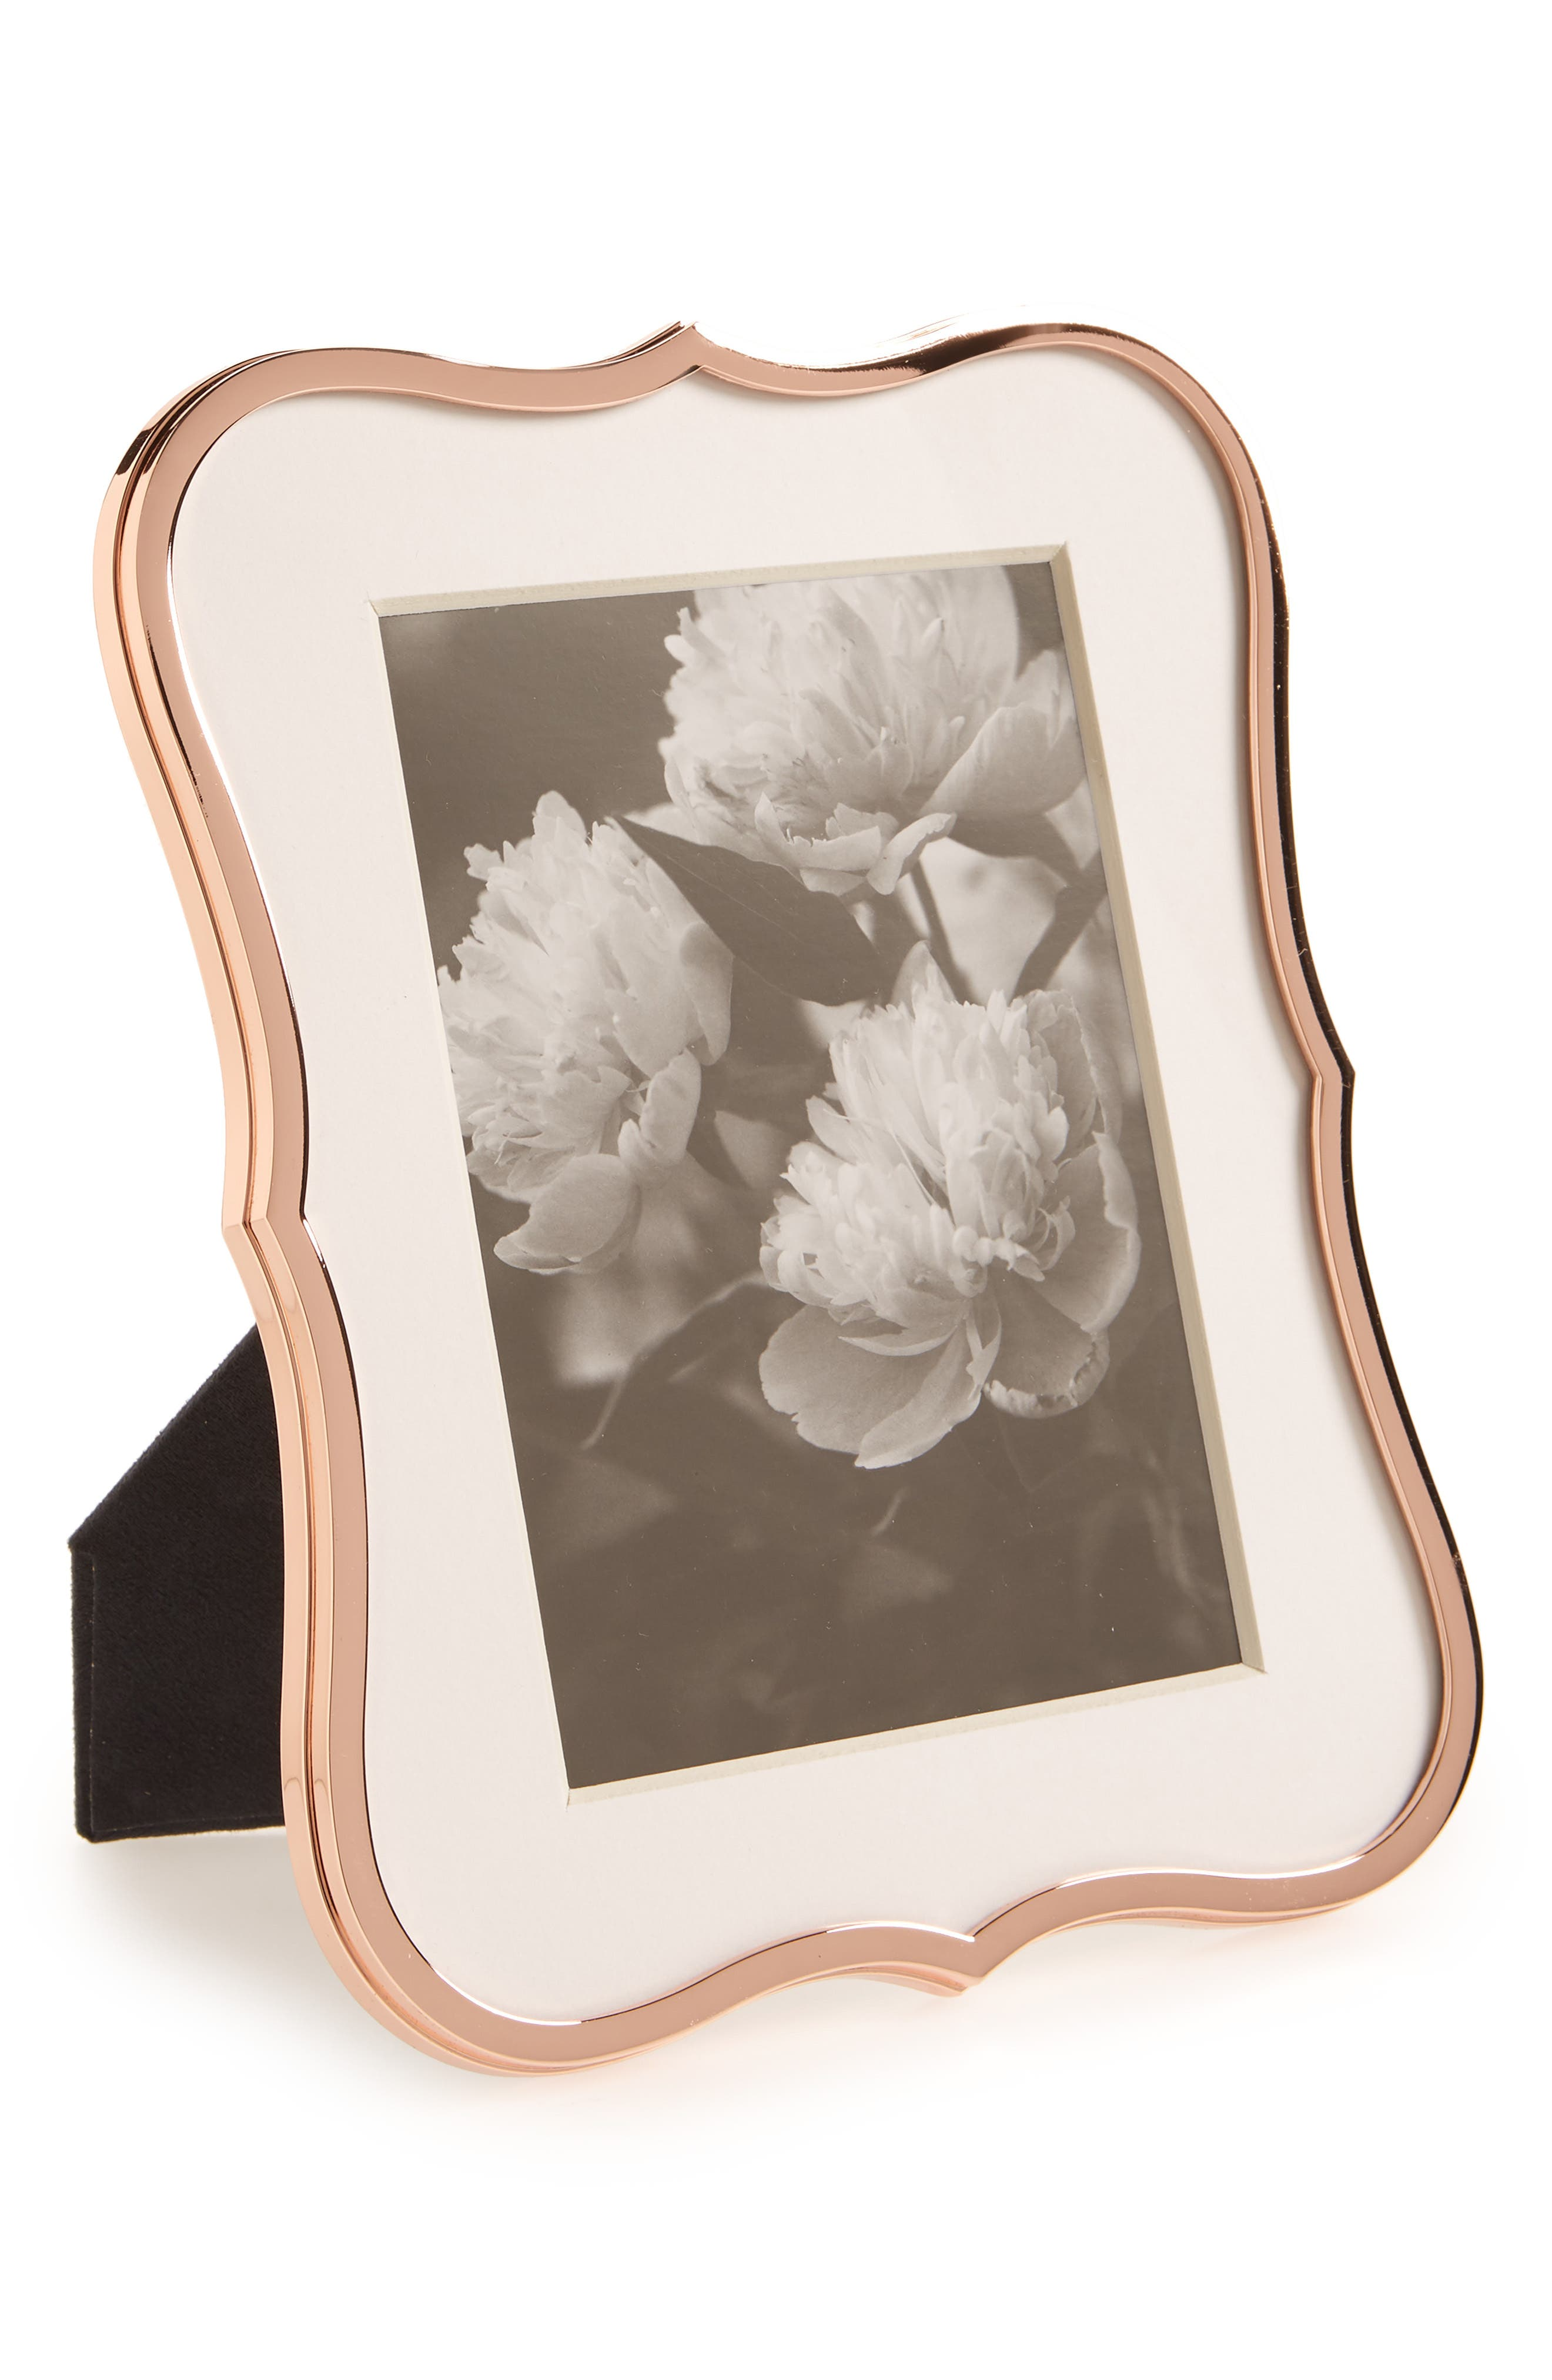 crown point picture frame,                             Main thumbnail 1, color,                             220